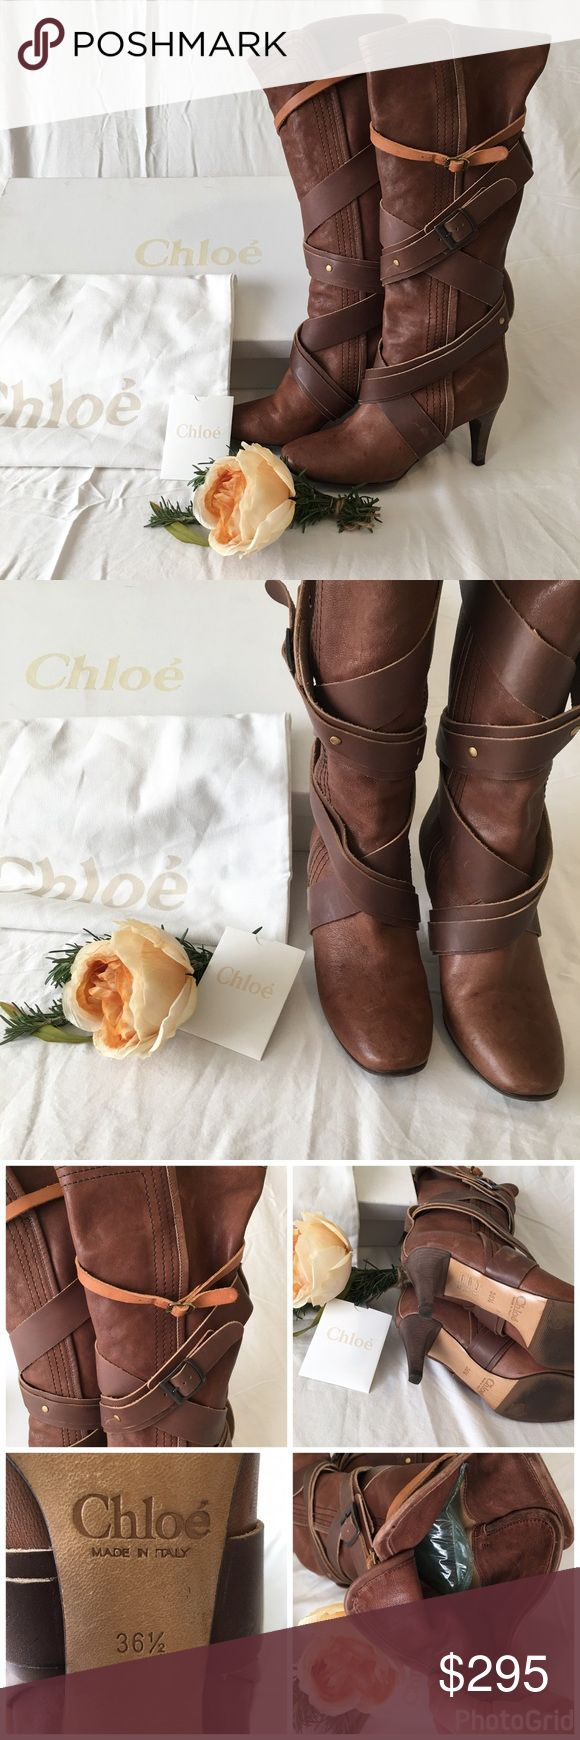 Chloe brown leather strapted boots Cute! Cute! Cute! These will definitely define your fall/winter fashion! The leather is very soft inside and out and all four of the buckles are adjustable. Everything that came with these boots is included...box, dustbag, and booklet. Happy poshing🌷 Chloe Shoes Heeled Boots